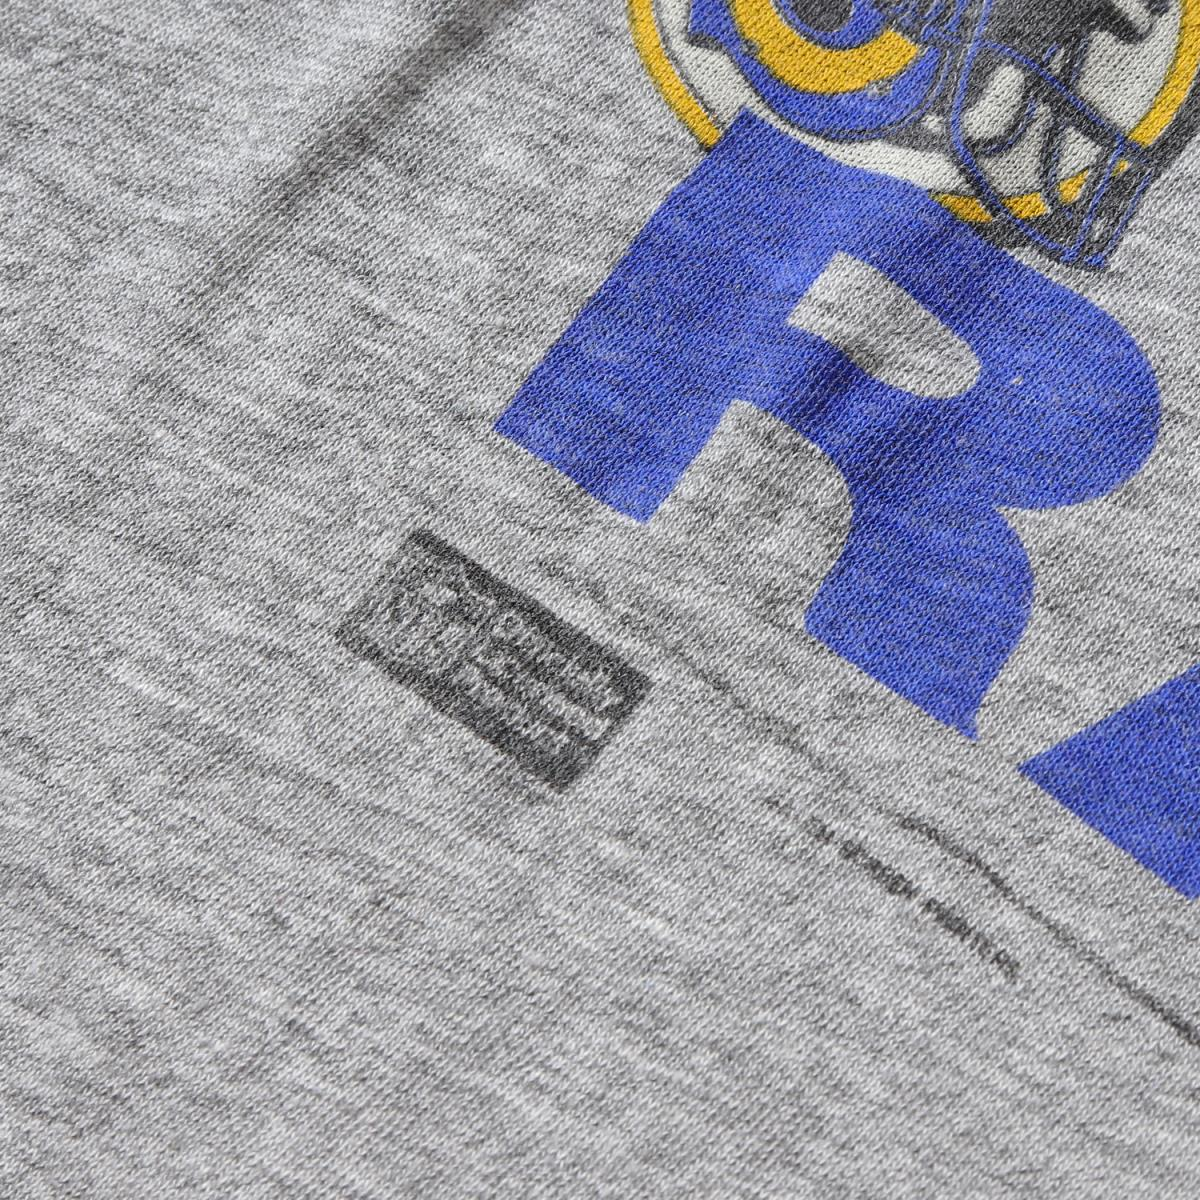 Others Vintage Brand (other vintage brands) 80  s Eric Dickerson T-shirt (NFL  official model) Heather gray 076cb97a4